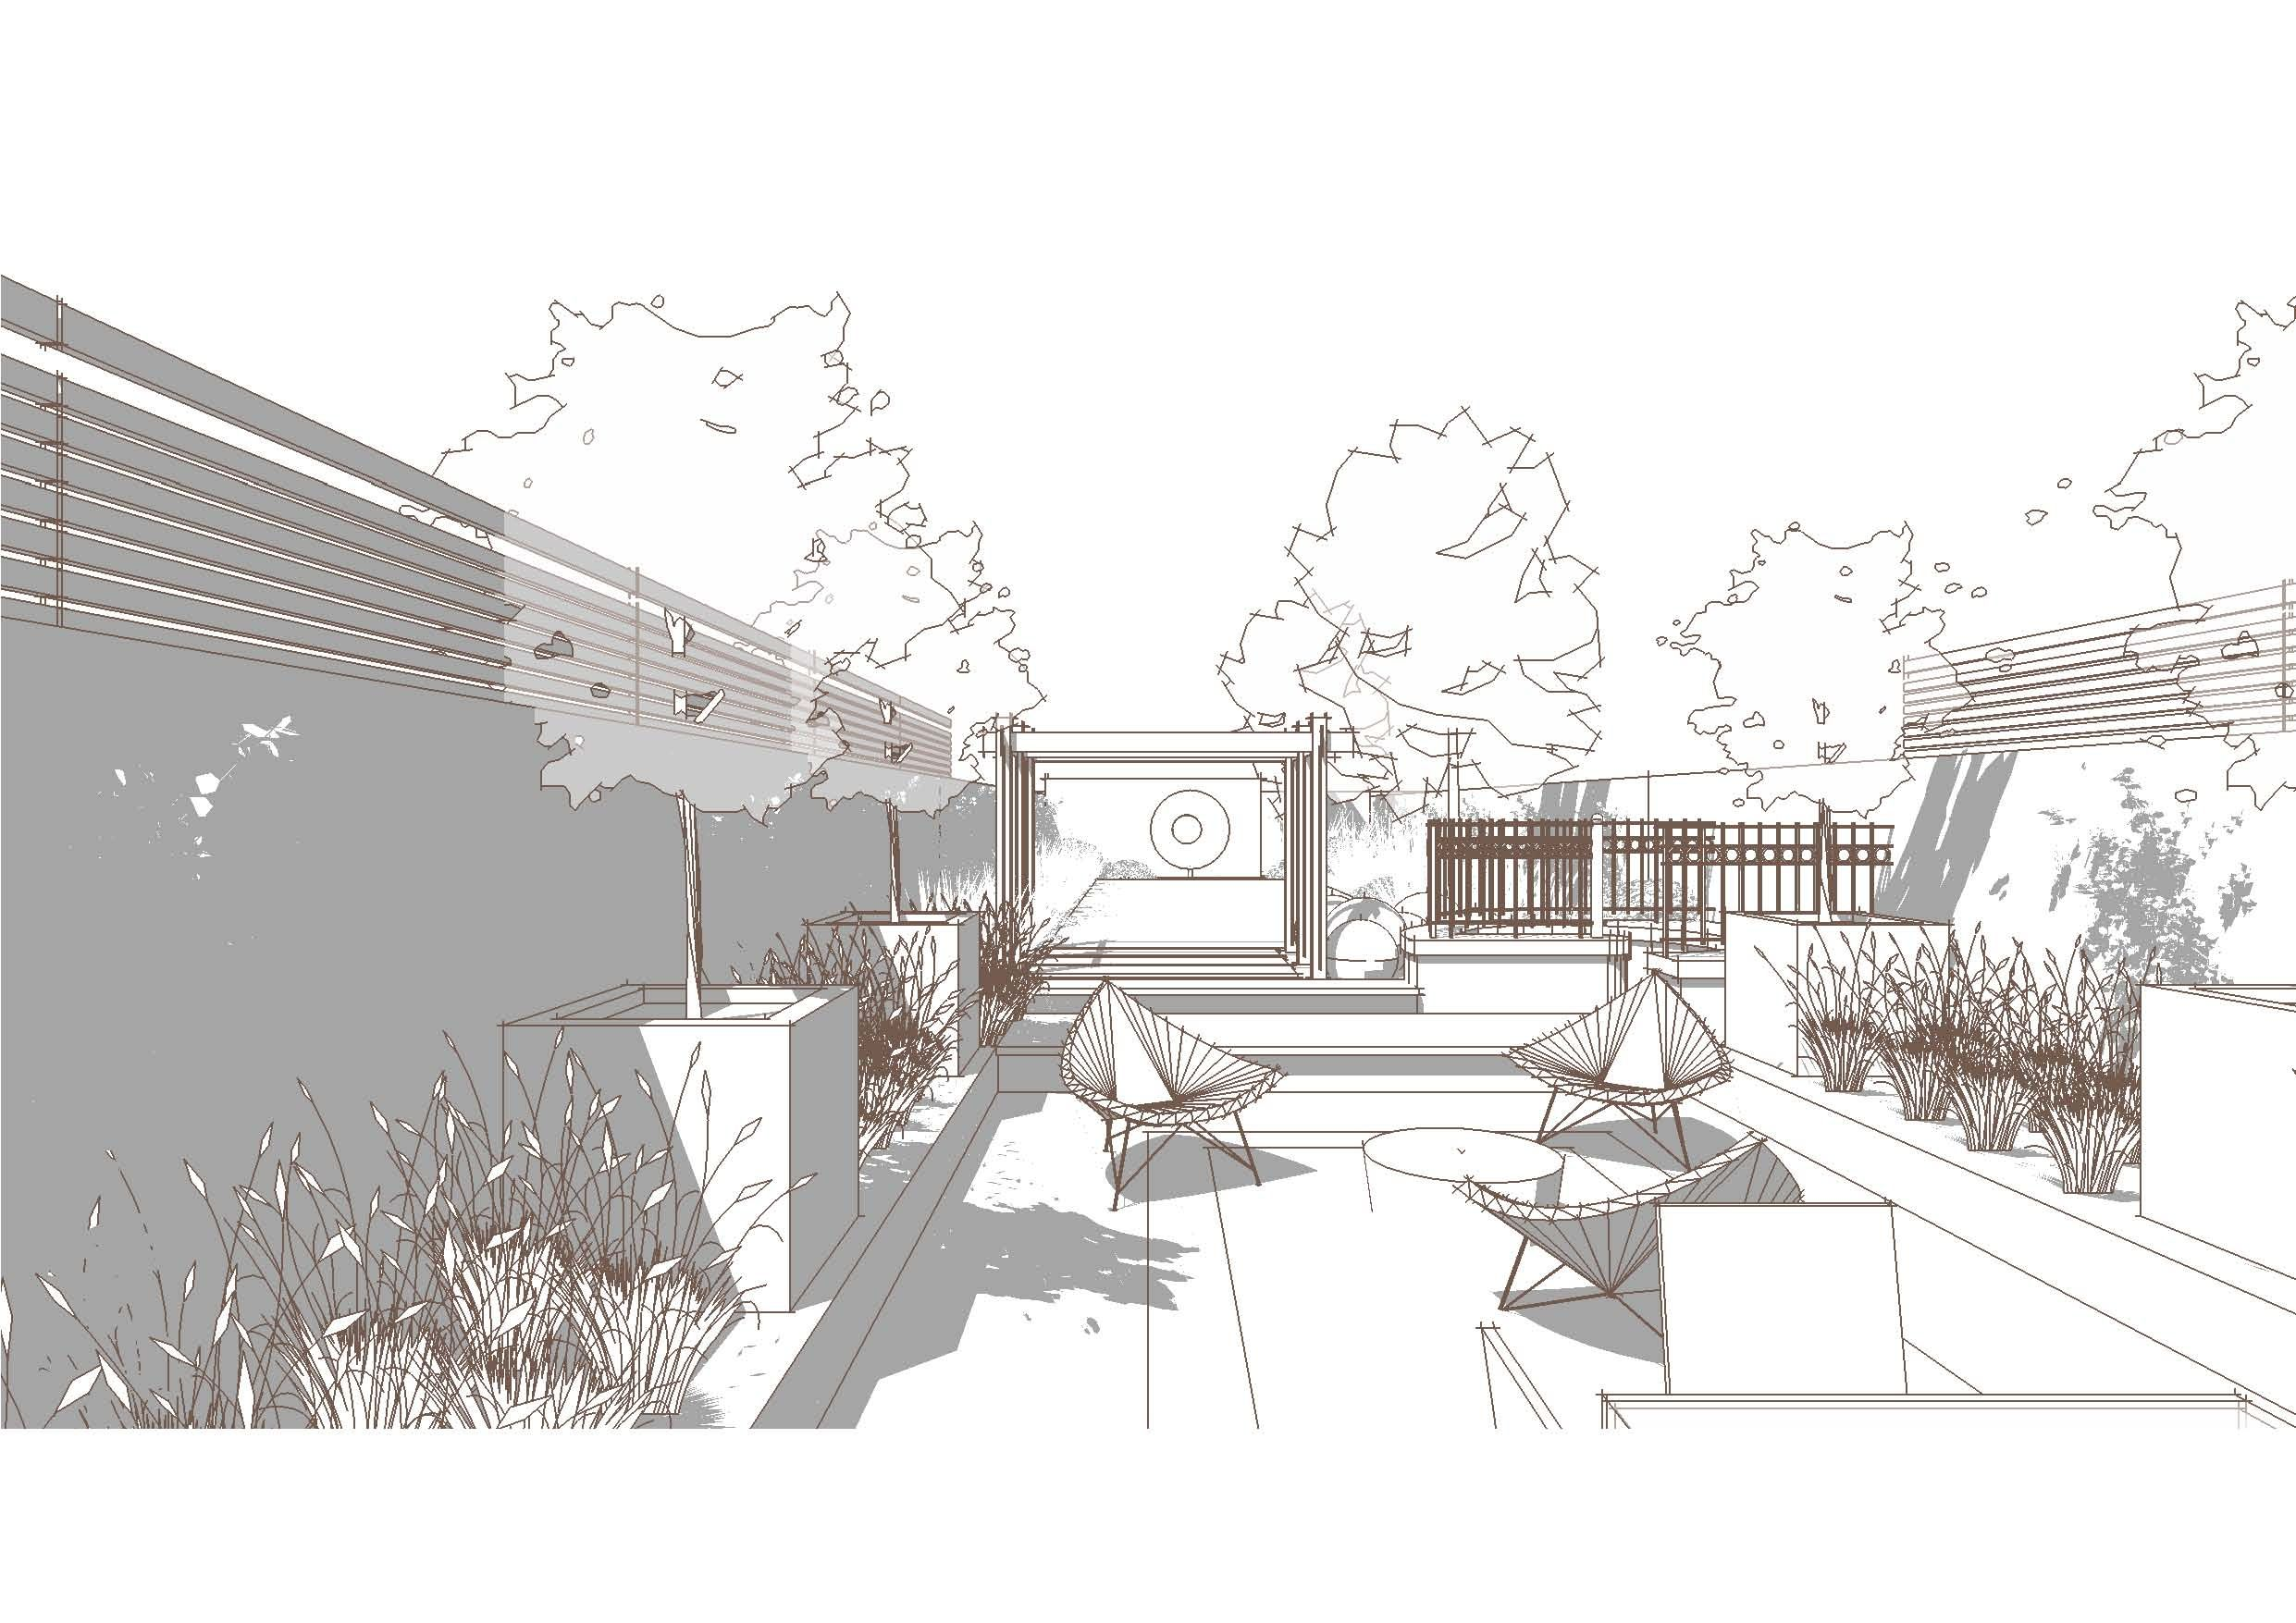 Architecture Drawing Illustrator bowles and wyer, garden perspective, sketchup, line render